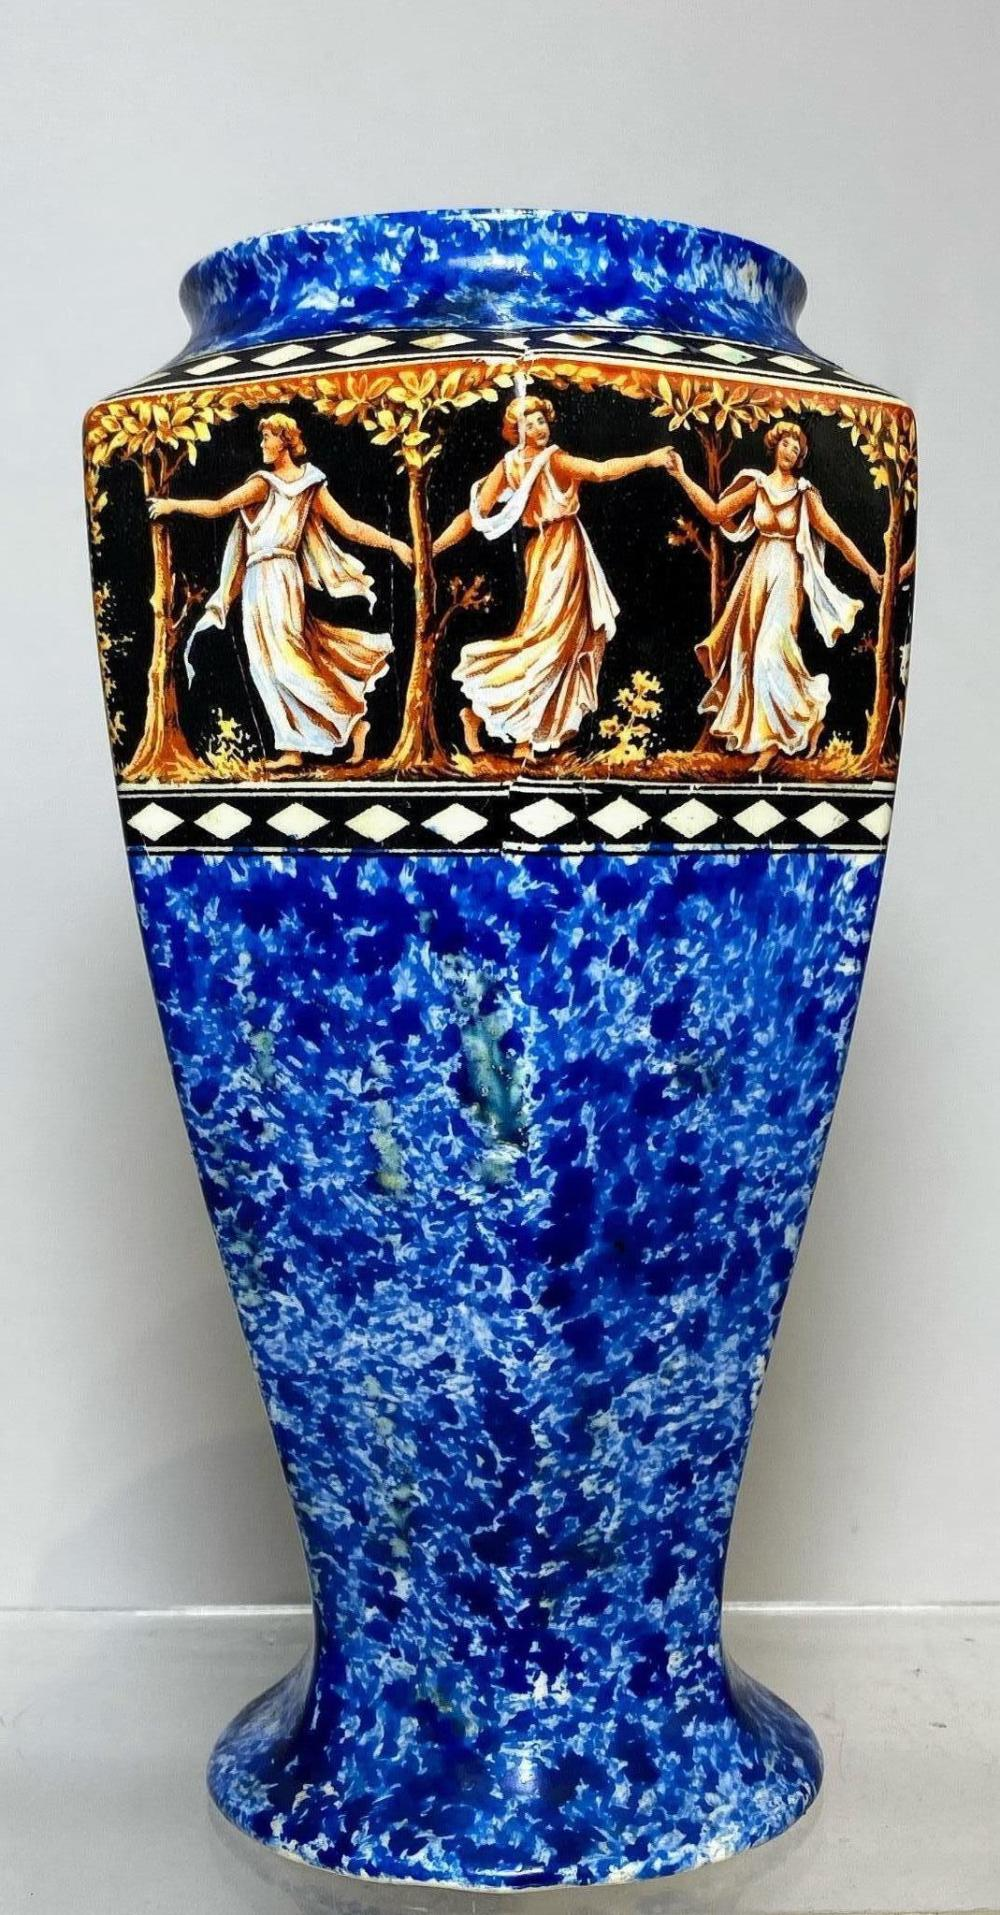 A Vase by H & K Tunstall Made in England Earthenware with Majolica Cobalt Blue with Dryads Dancing Amidst Woods